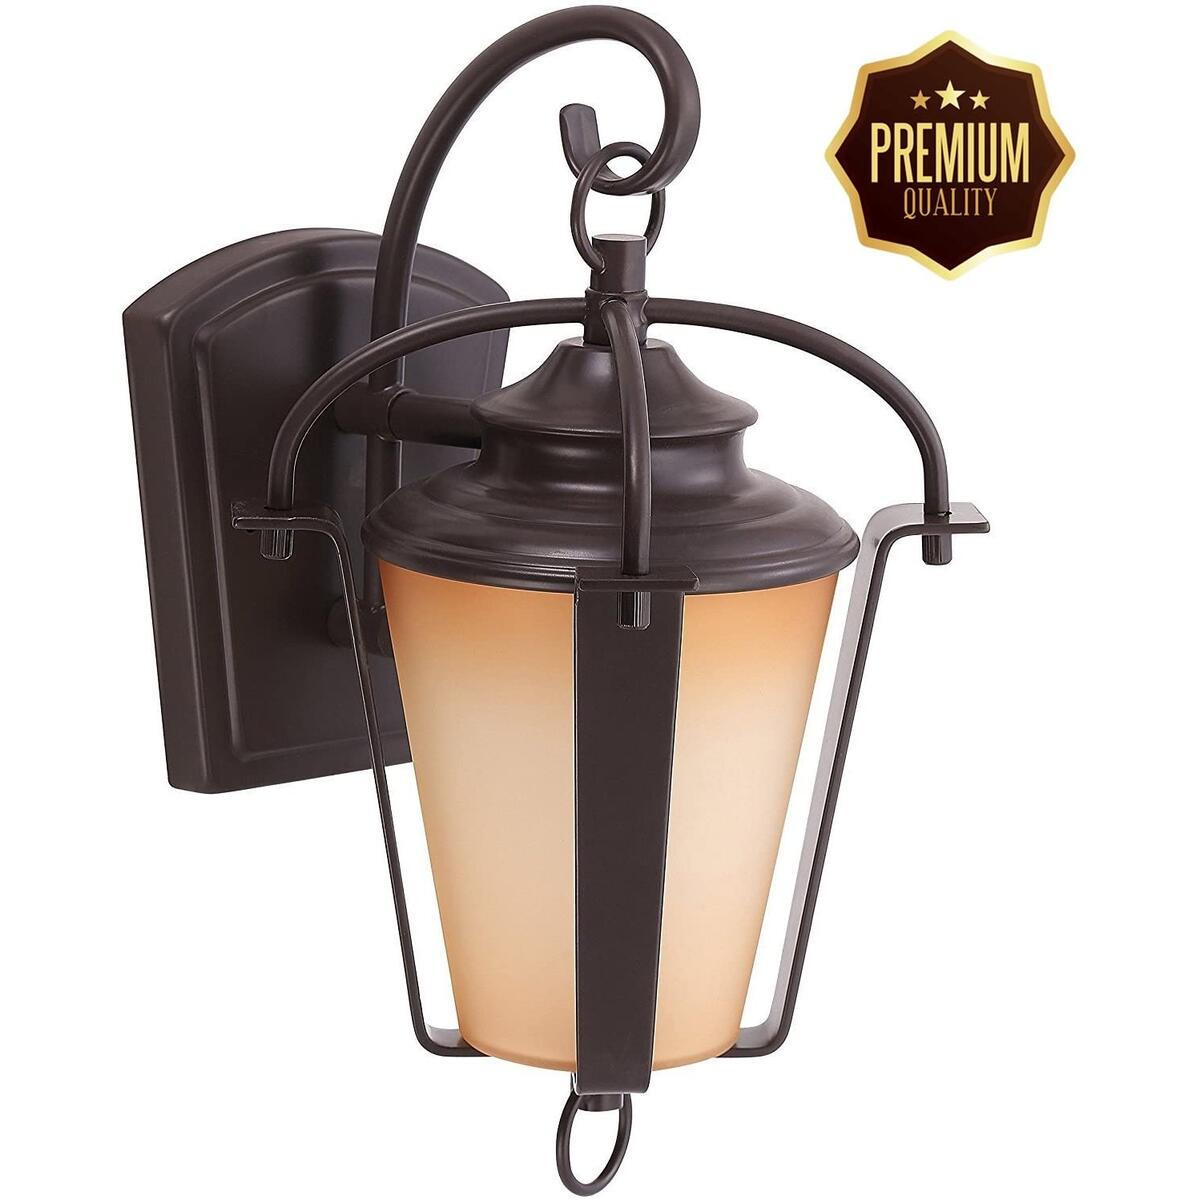 """LED Outdoor Lantern by Ciata Lighting –Wall Mounted Warm Light Fixture for Elegant Copper Bronze Finish –16""""Energy EfficientLighting with Weatherproof Steel Frame & Amber Alabaster Glass Lens"""